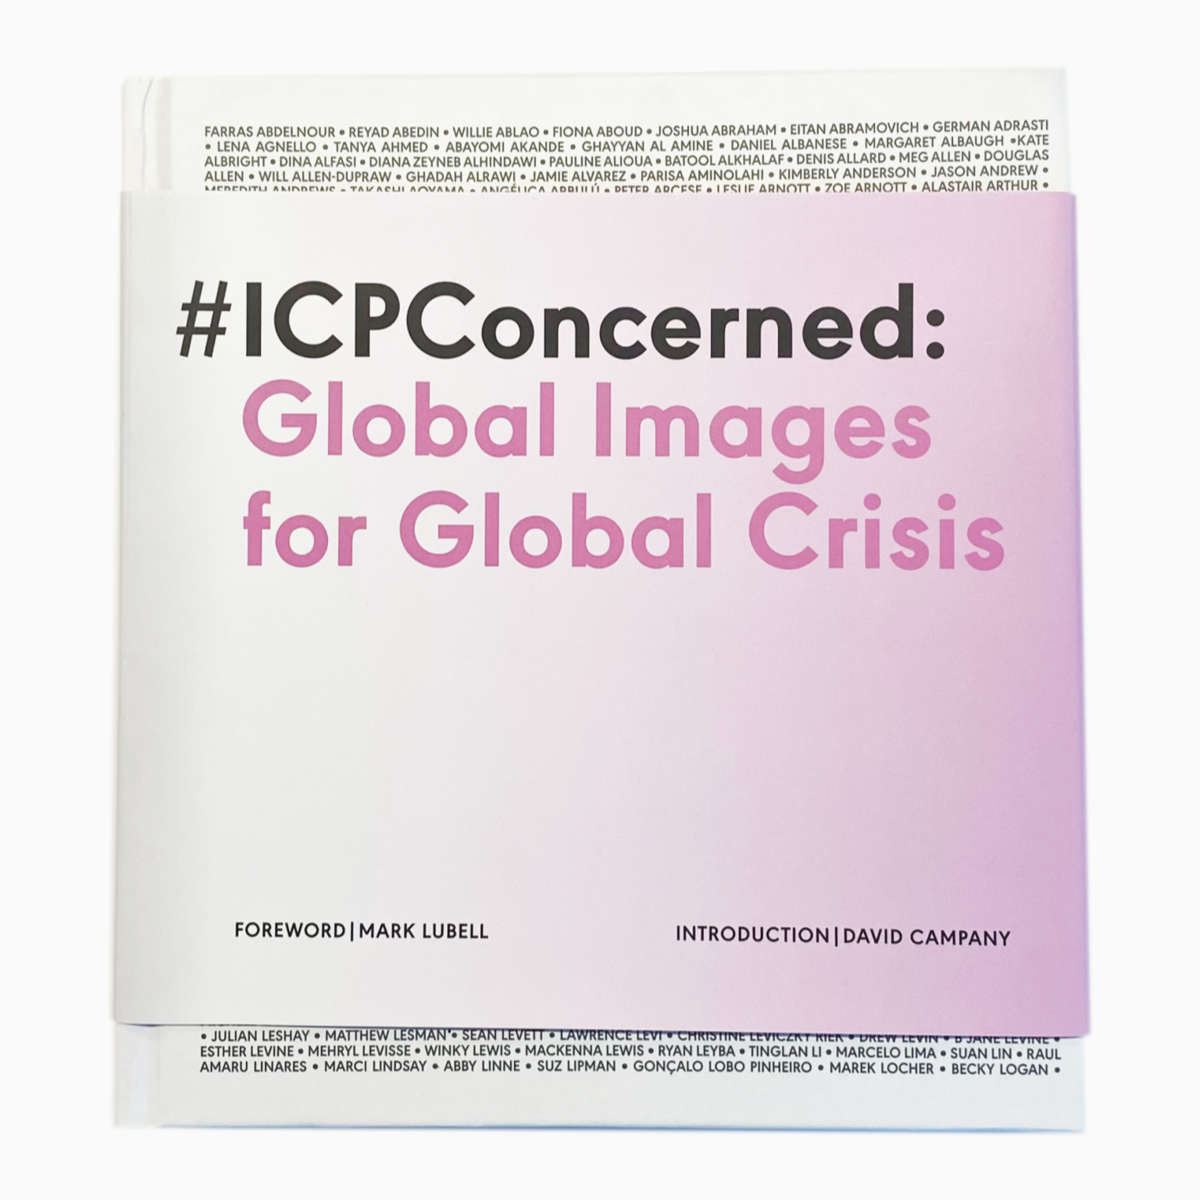 ICPConcerned - Global Images for Global Crisis